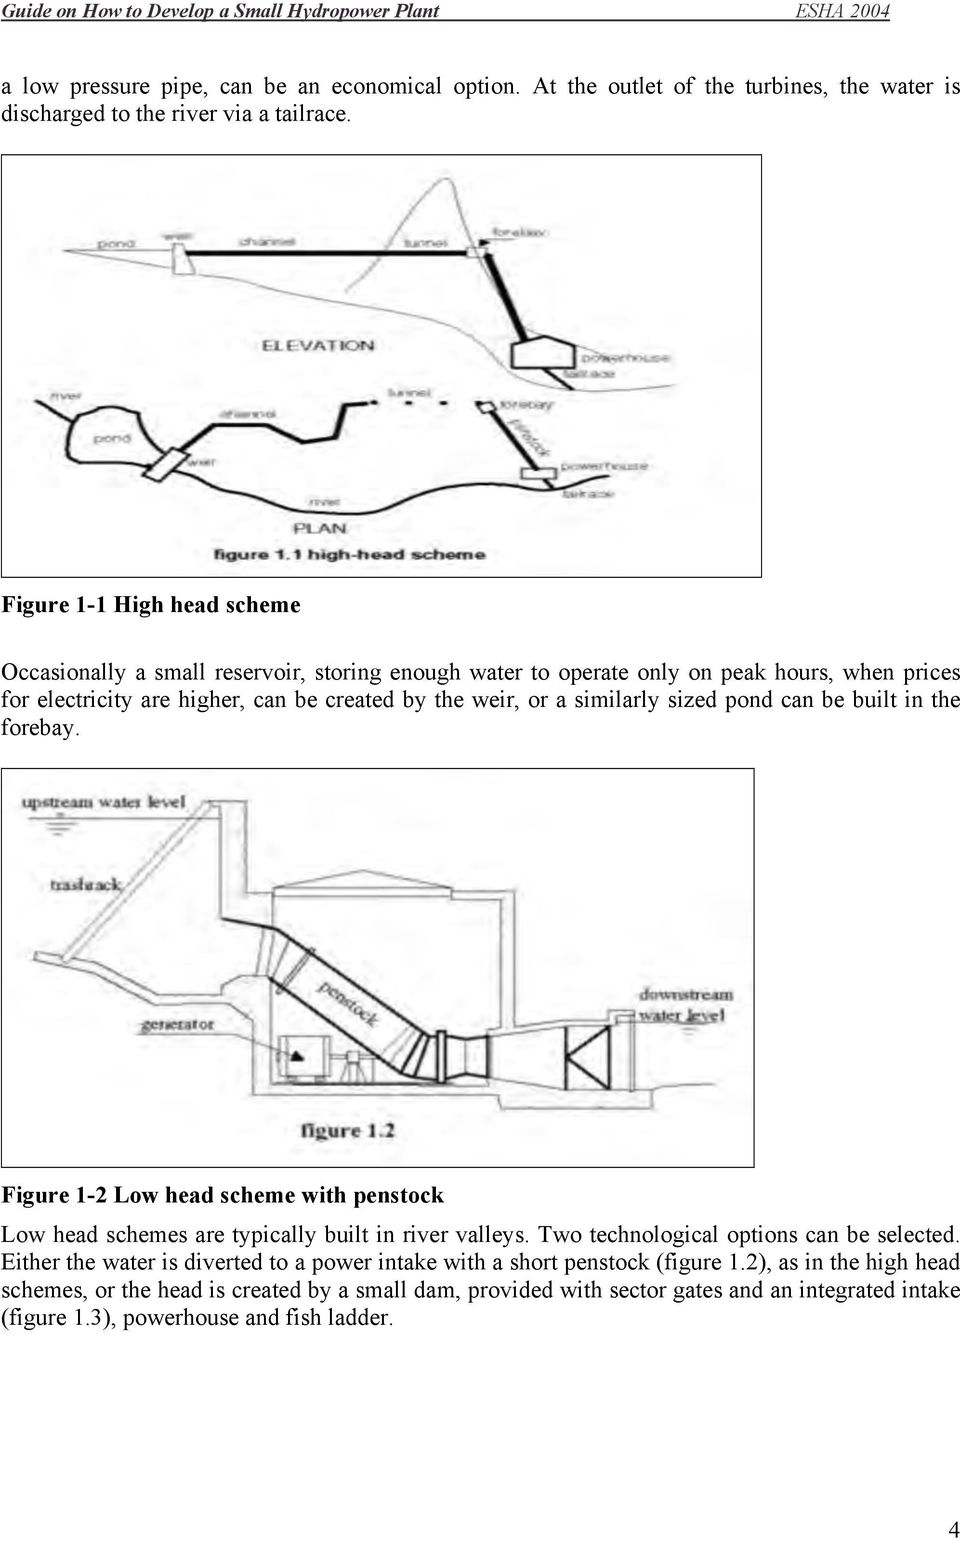 Guide On How To Develop A Small Hydropower Plant Pdf Hydro Power With Diagram Similarly Sized Pond Can Be Built In The Forebay Figure 1 2 Low Head